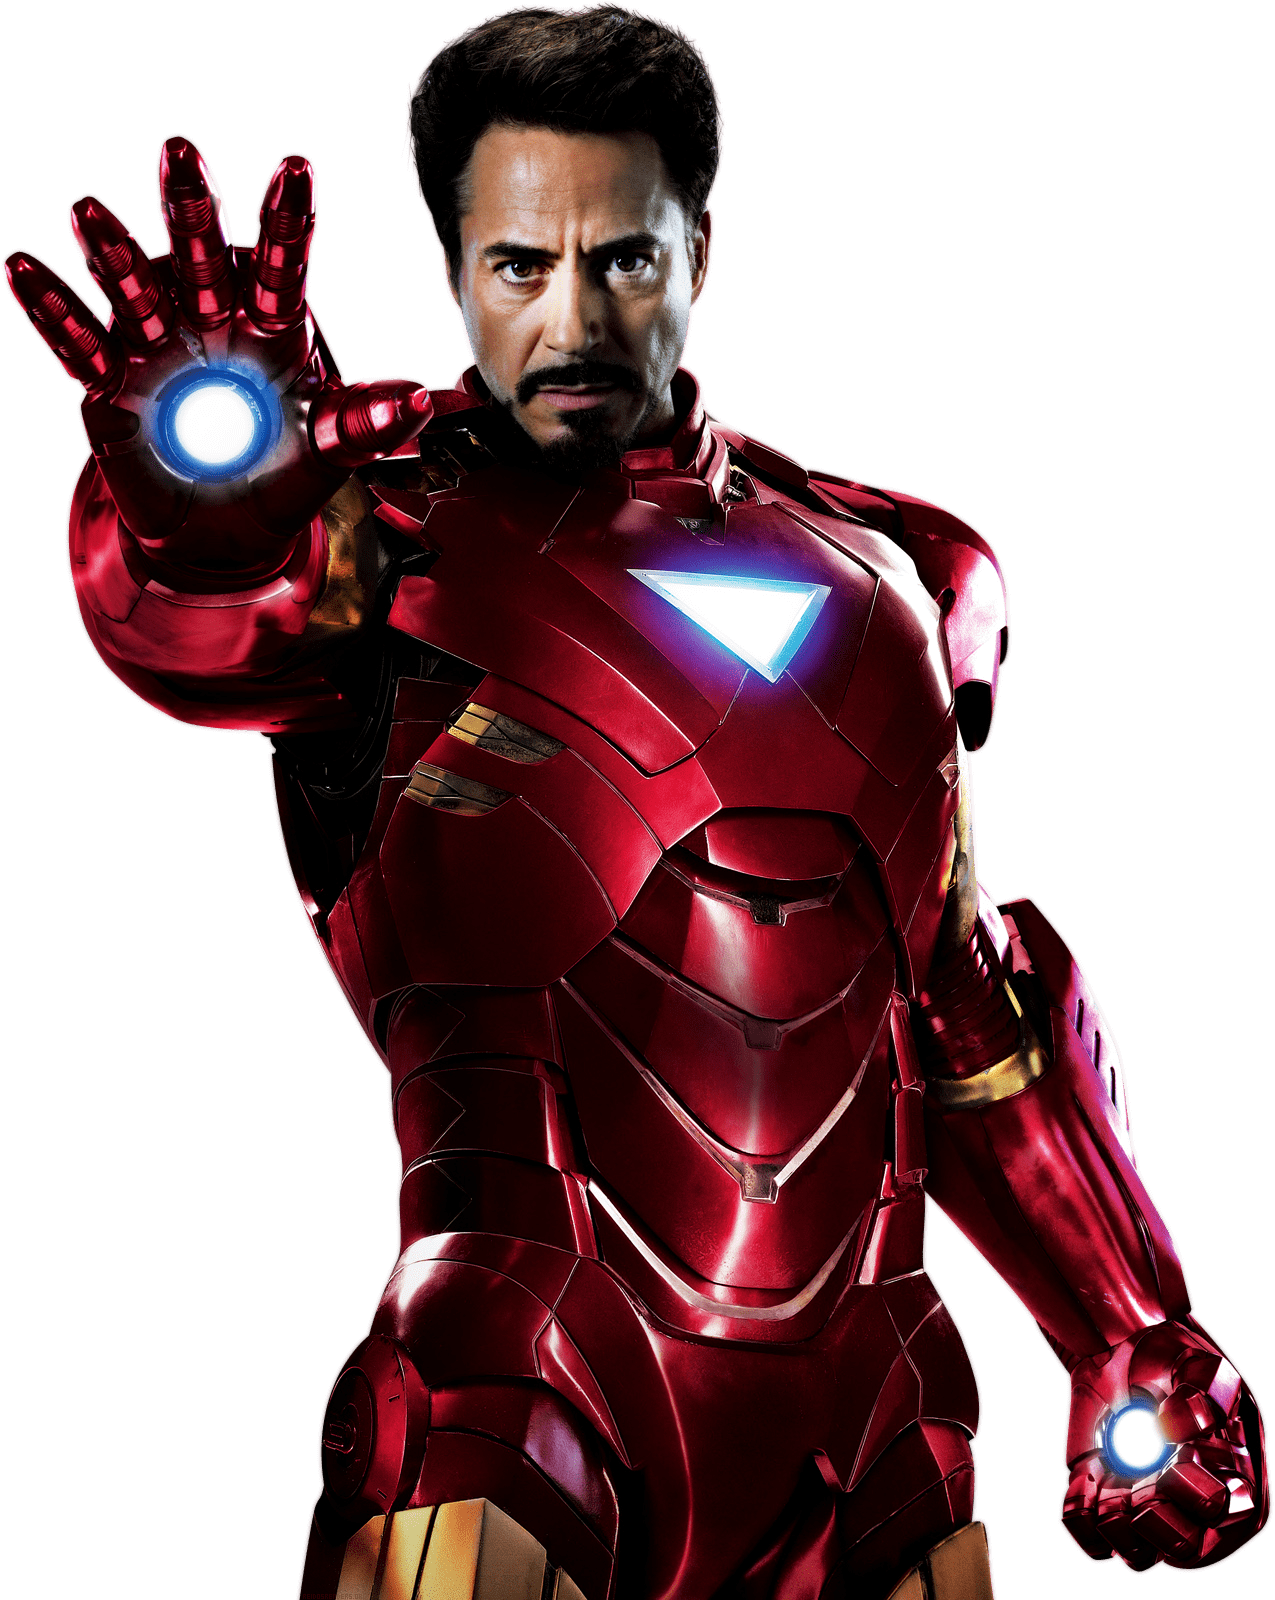 Robert Downey Jr Clipart - Robert Downey Jr Clipart